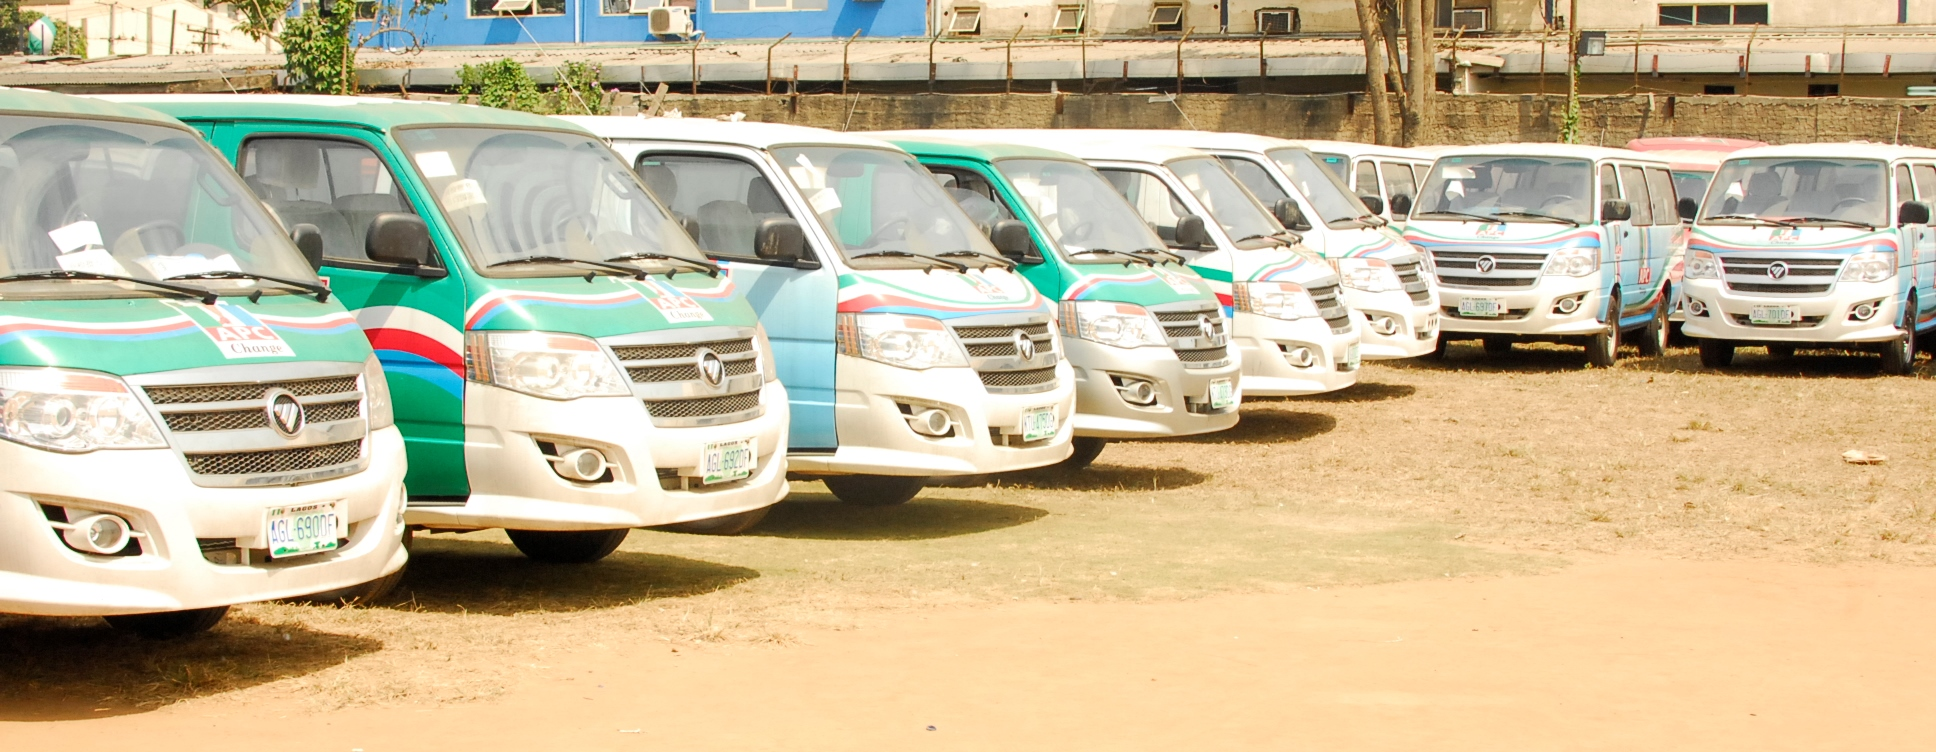 Buses-donated-by-the-Governor-in-support-of-the-Campaign